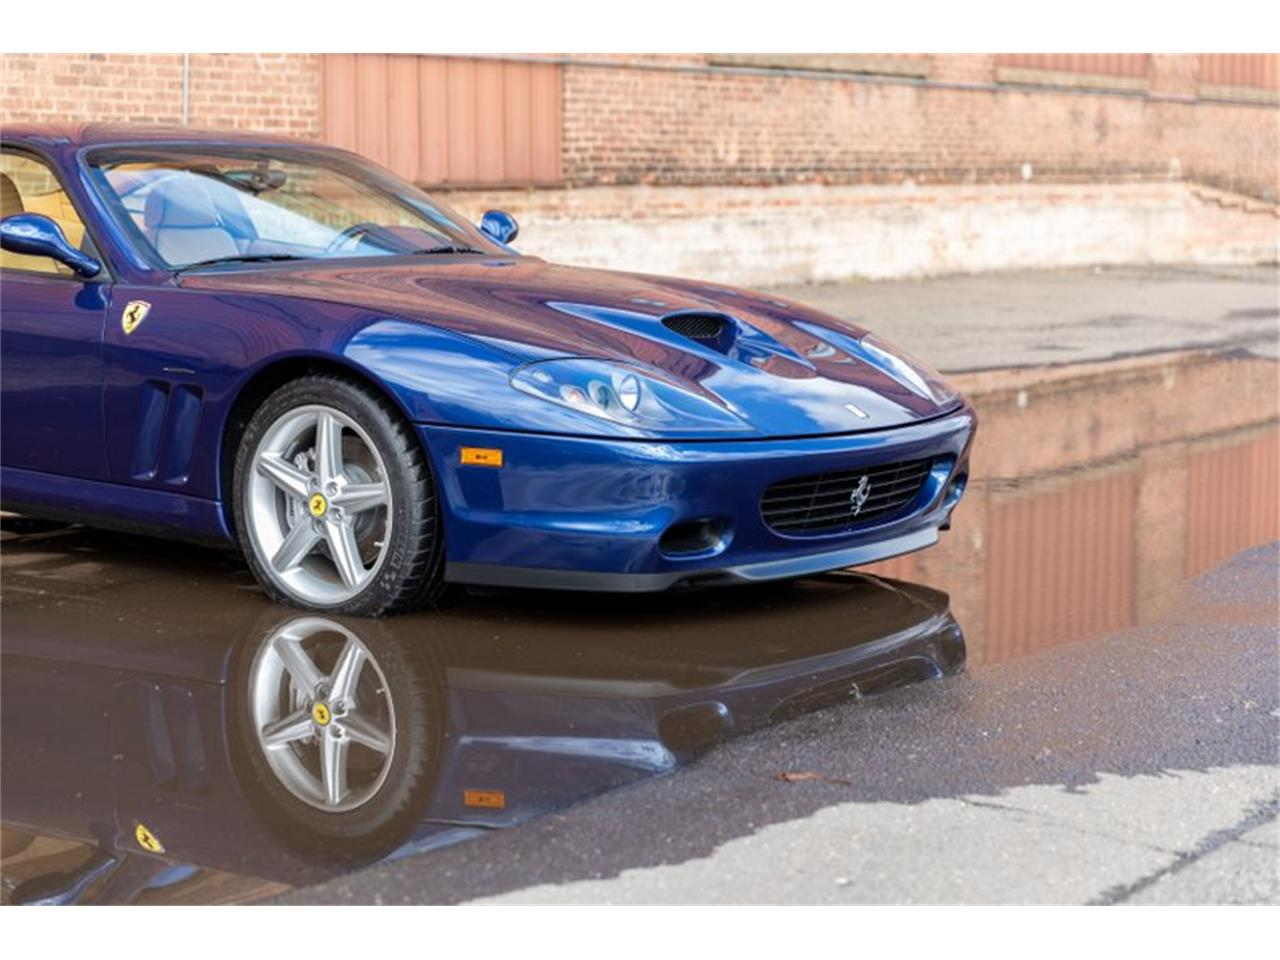 2002 Ferrari 575 (CC-1330315) for sale in Wallingford, Connecticut